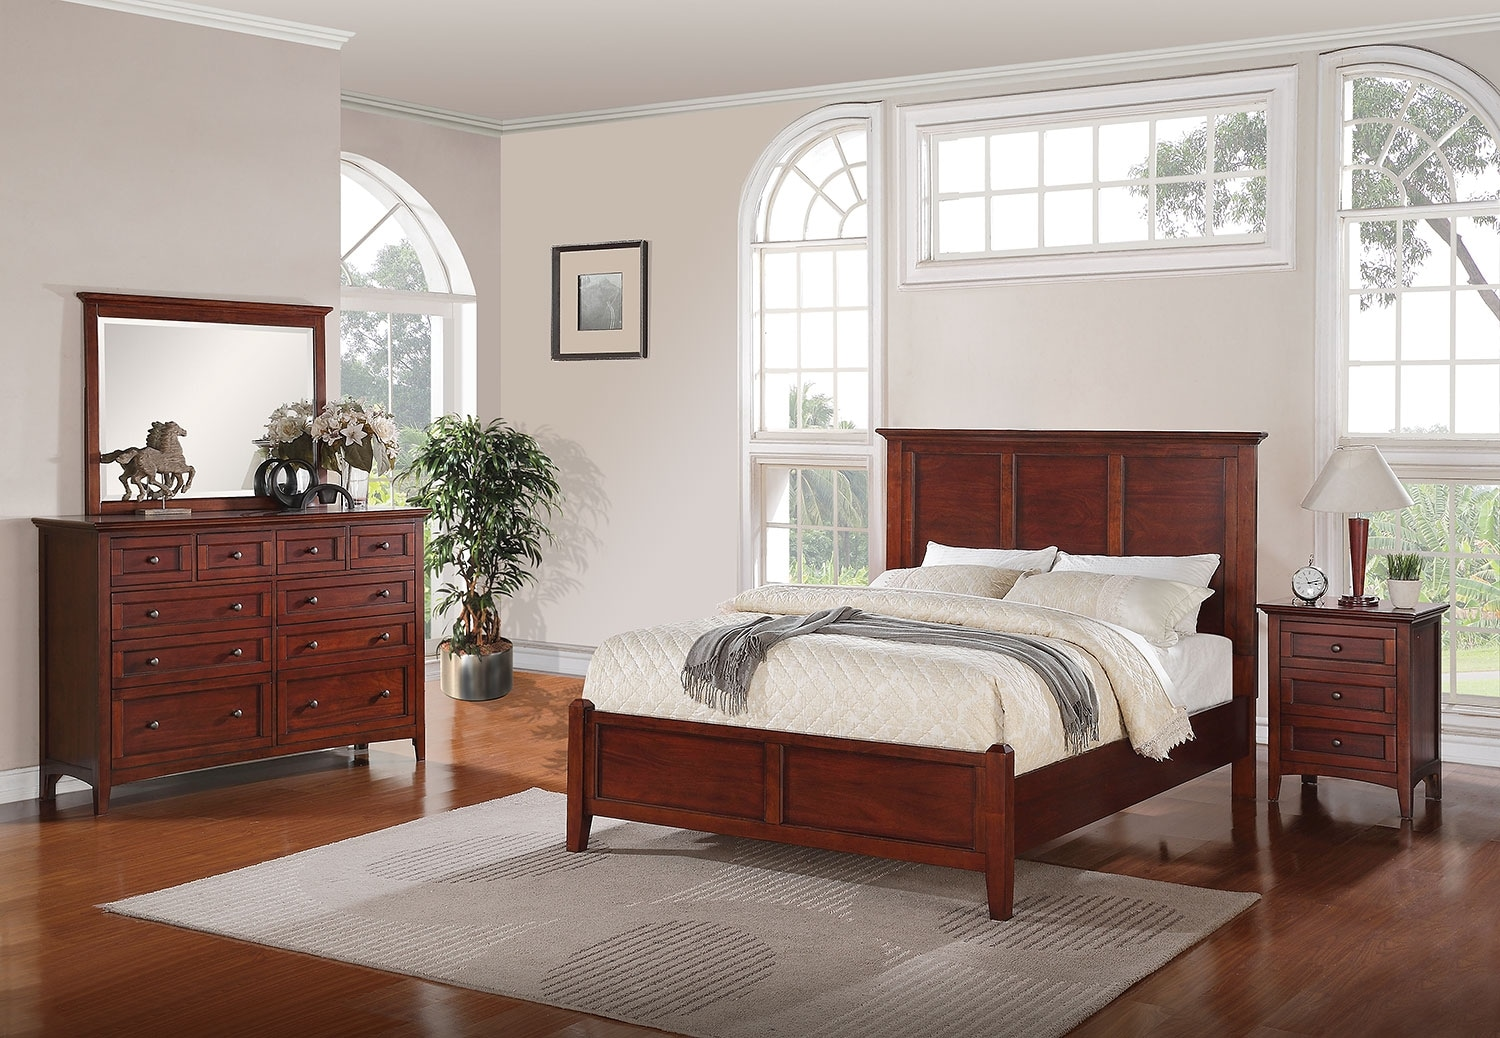 Forest Lake 5-Piece King Bedroom Set - Mahogany